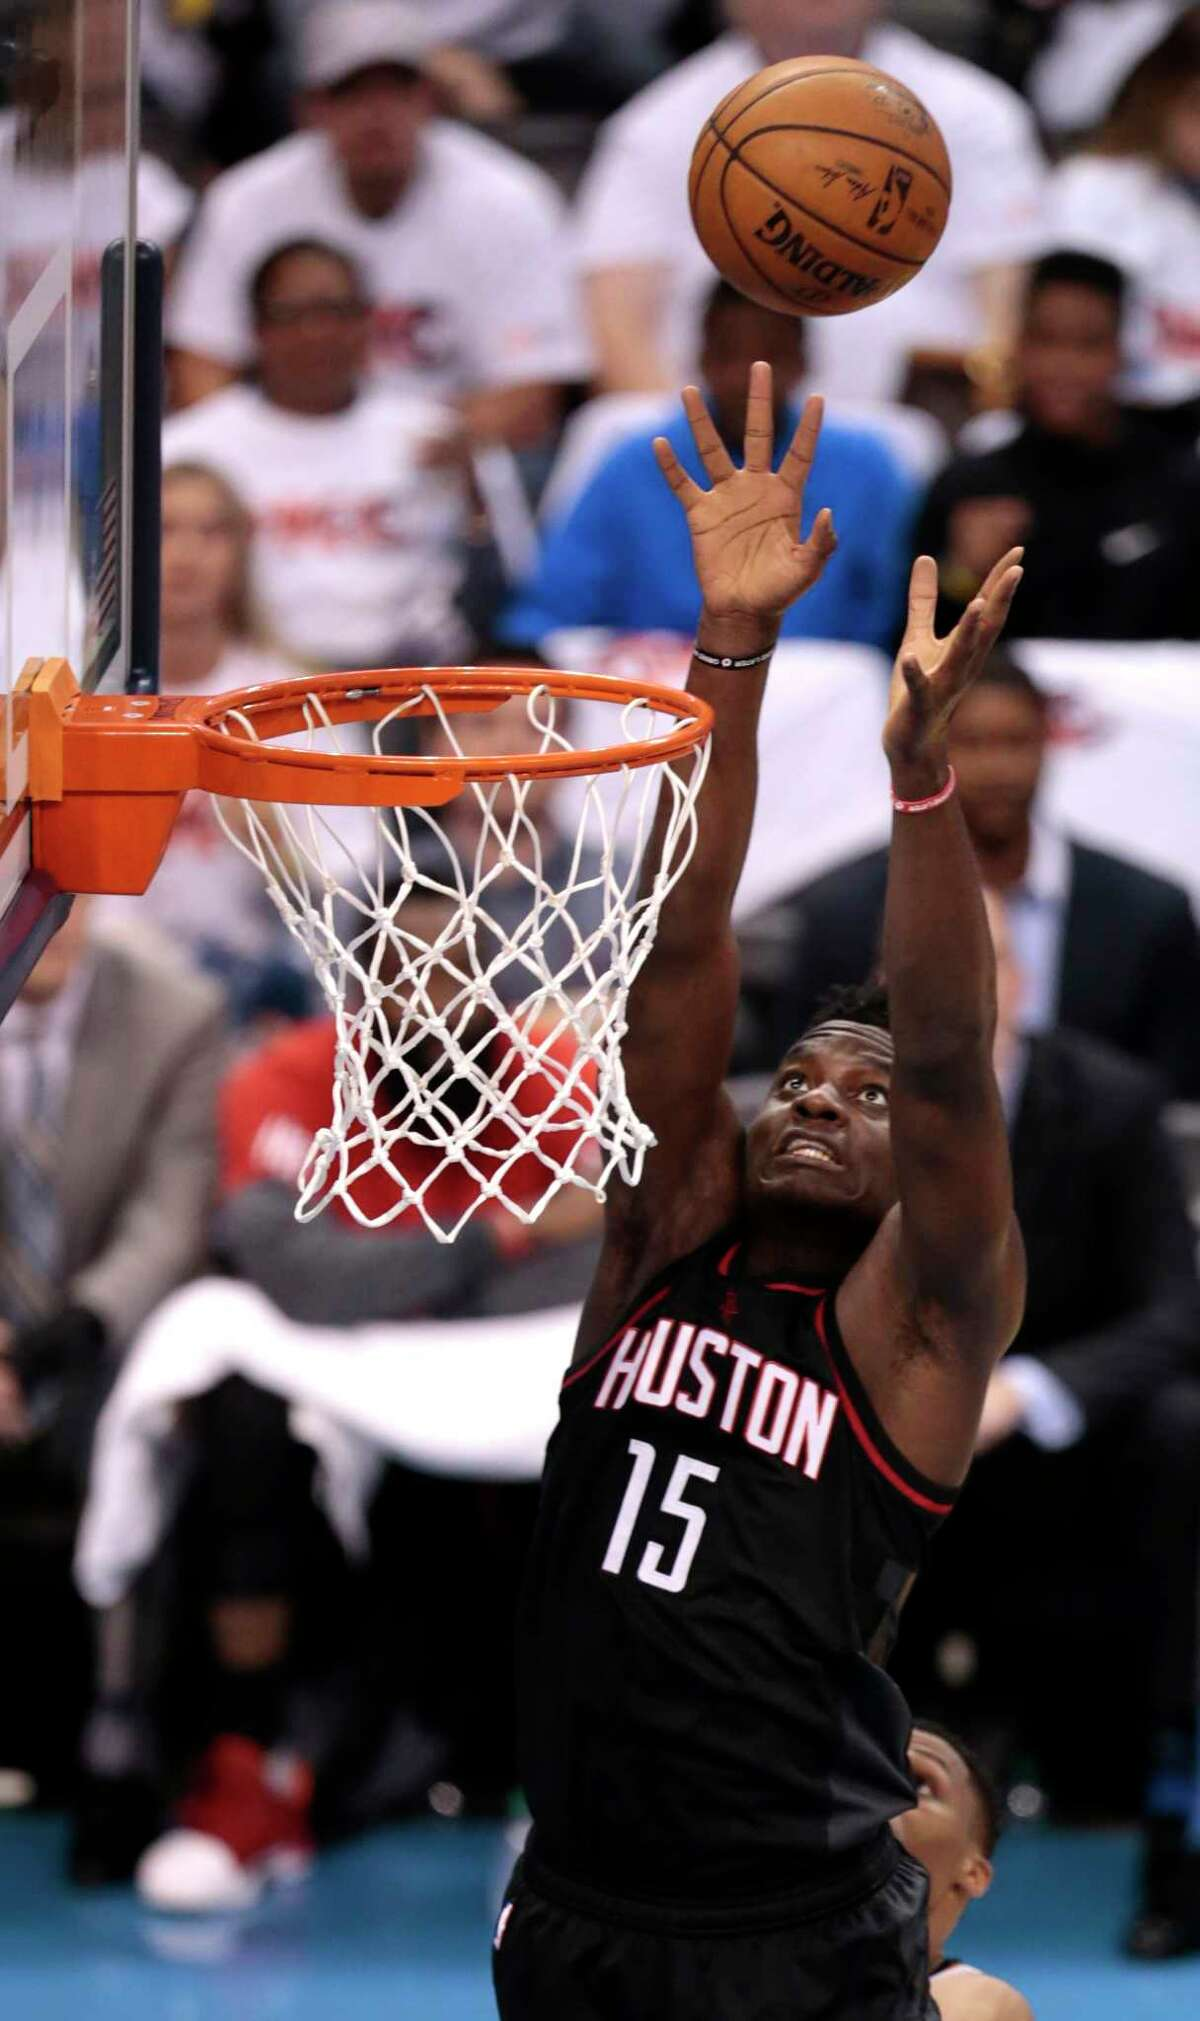 Houston Rockets center Clint Capela (15) goes up for a dunk against the Oklahoma City Thunder during the second quarter of Game 3 of the NBA Western Conference first-round playoff series at Chesapeake Energy Arena on Friday, April 21, 2017, in Oklahoma City. ( Brett Coomer / Houston Chronicle )